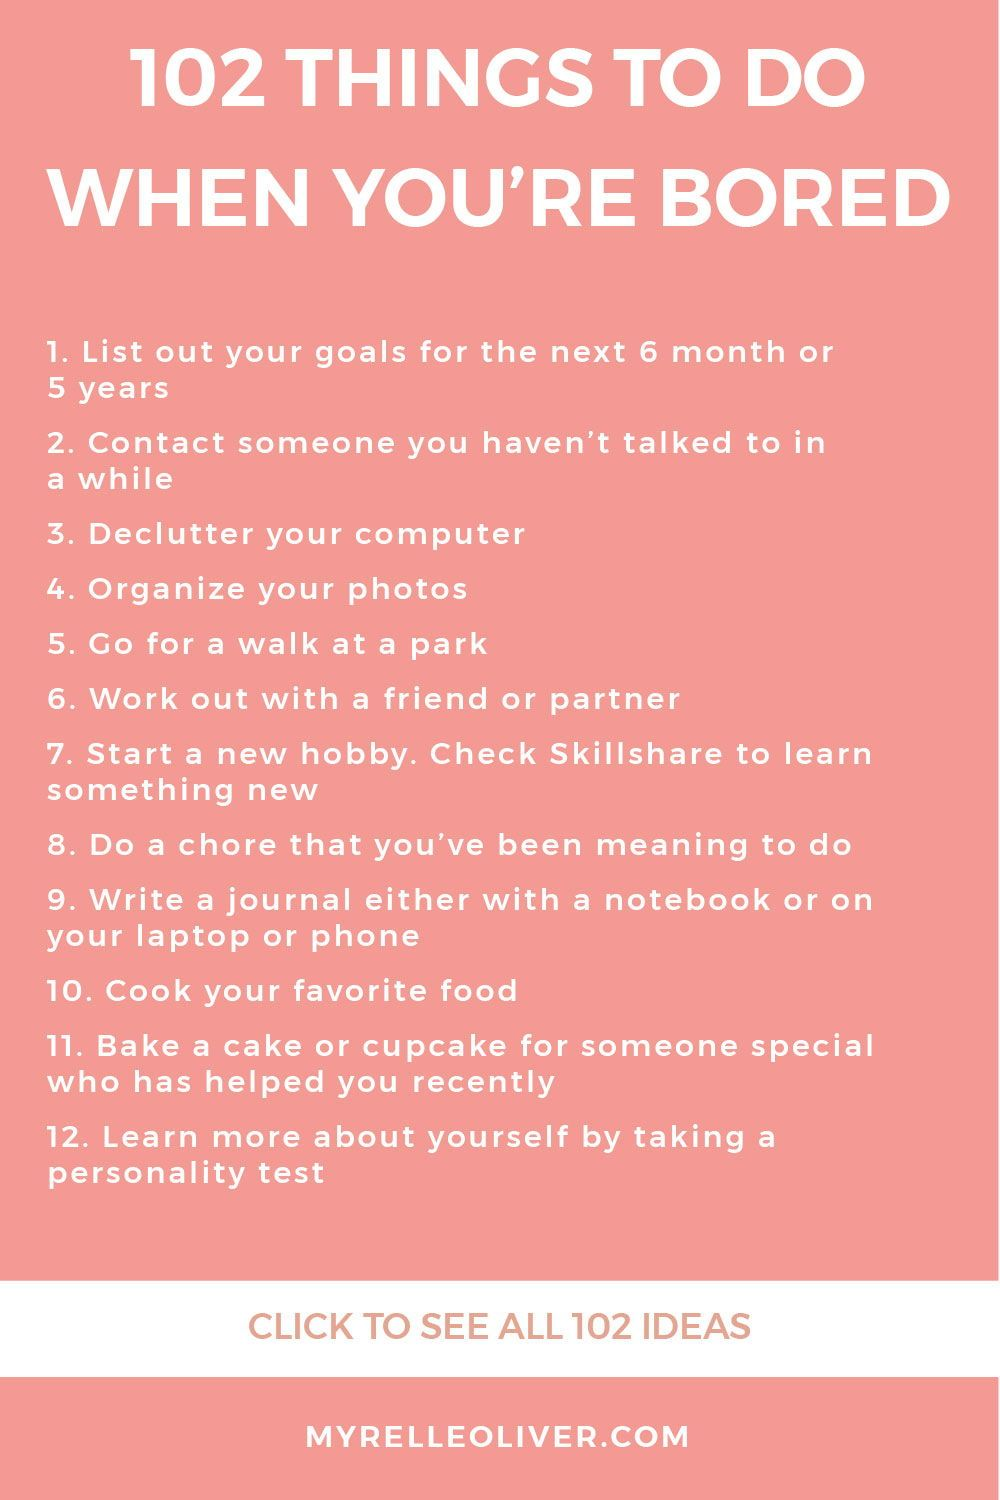 102 Things To Do When You Re Bored Myrelle Oliver Things To Do When Bored What To Do When Bored Productive Things To Do